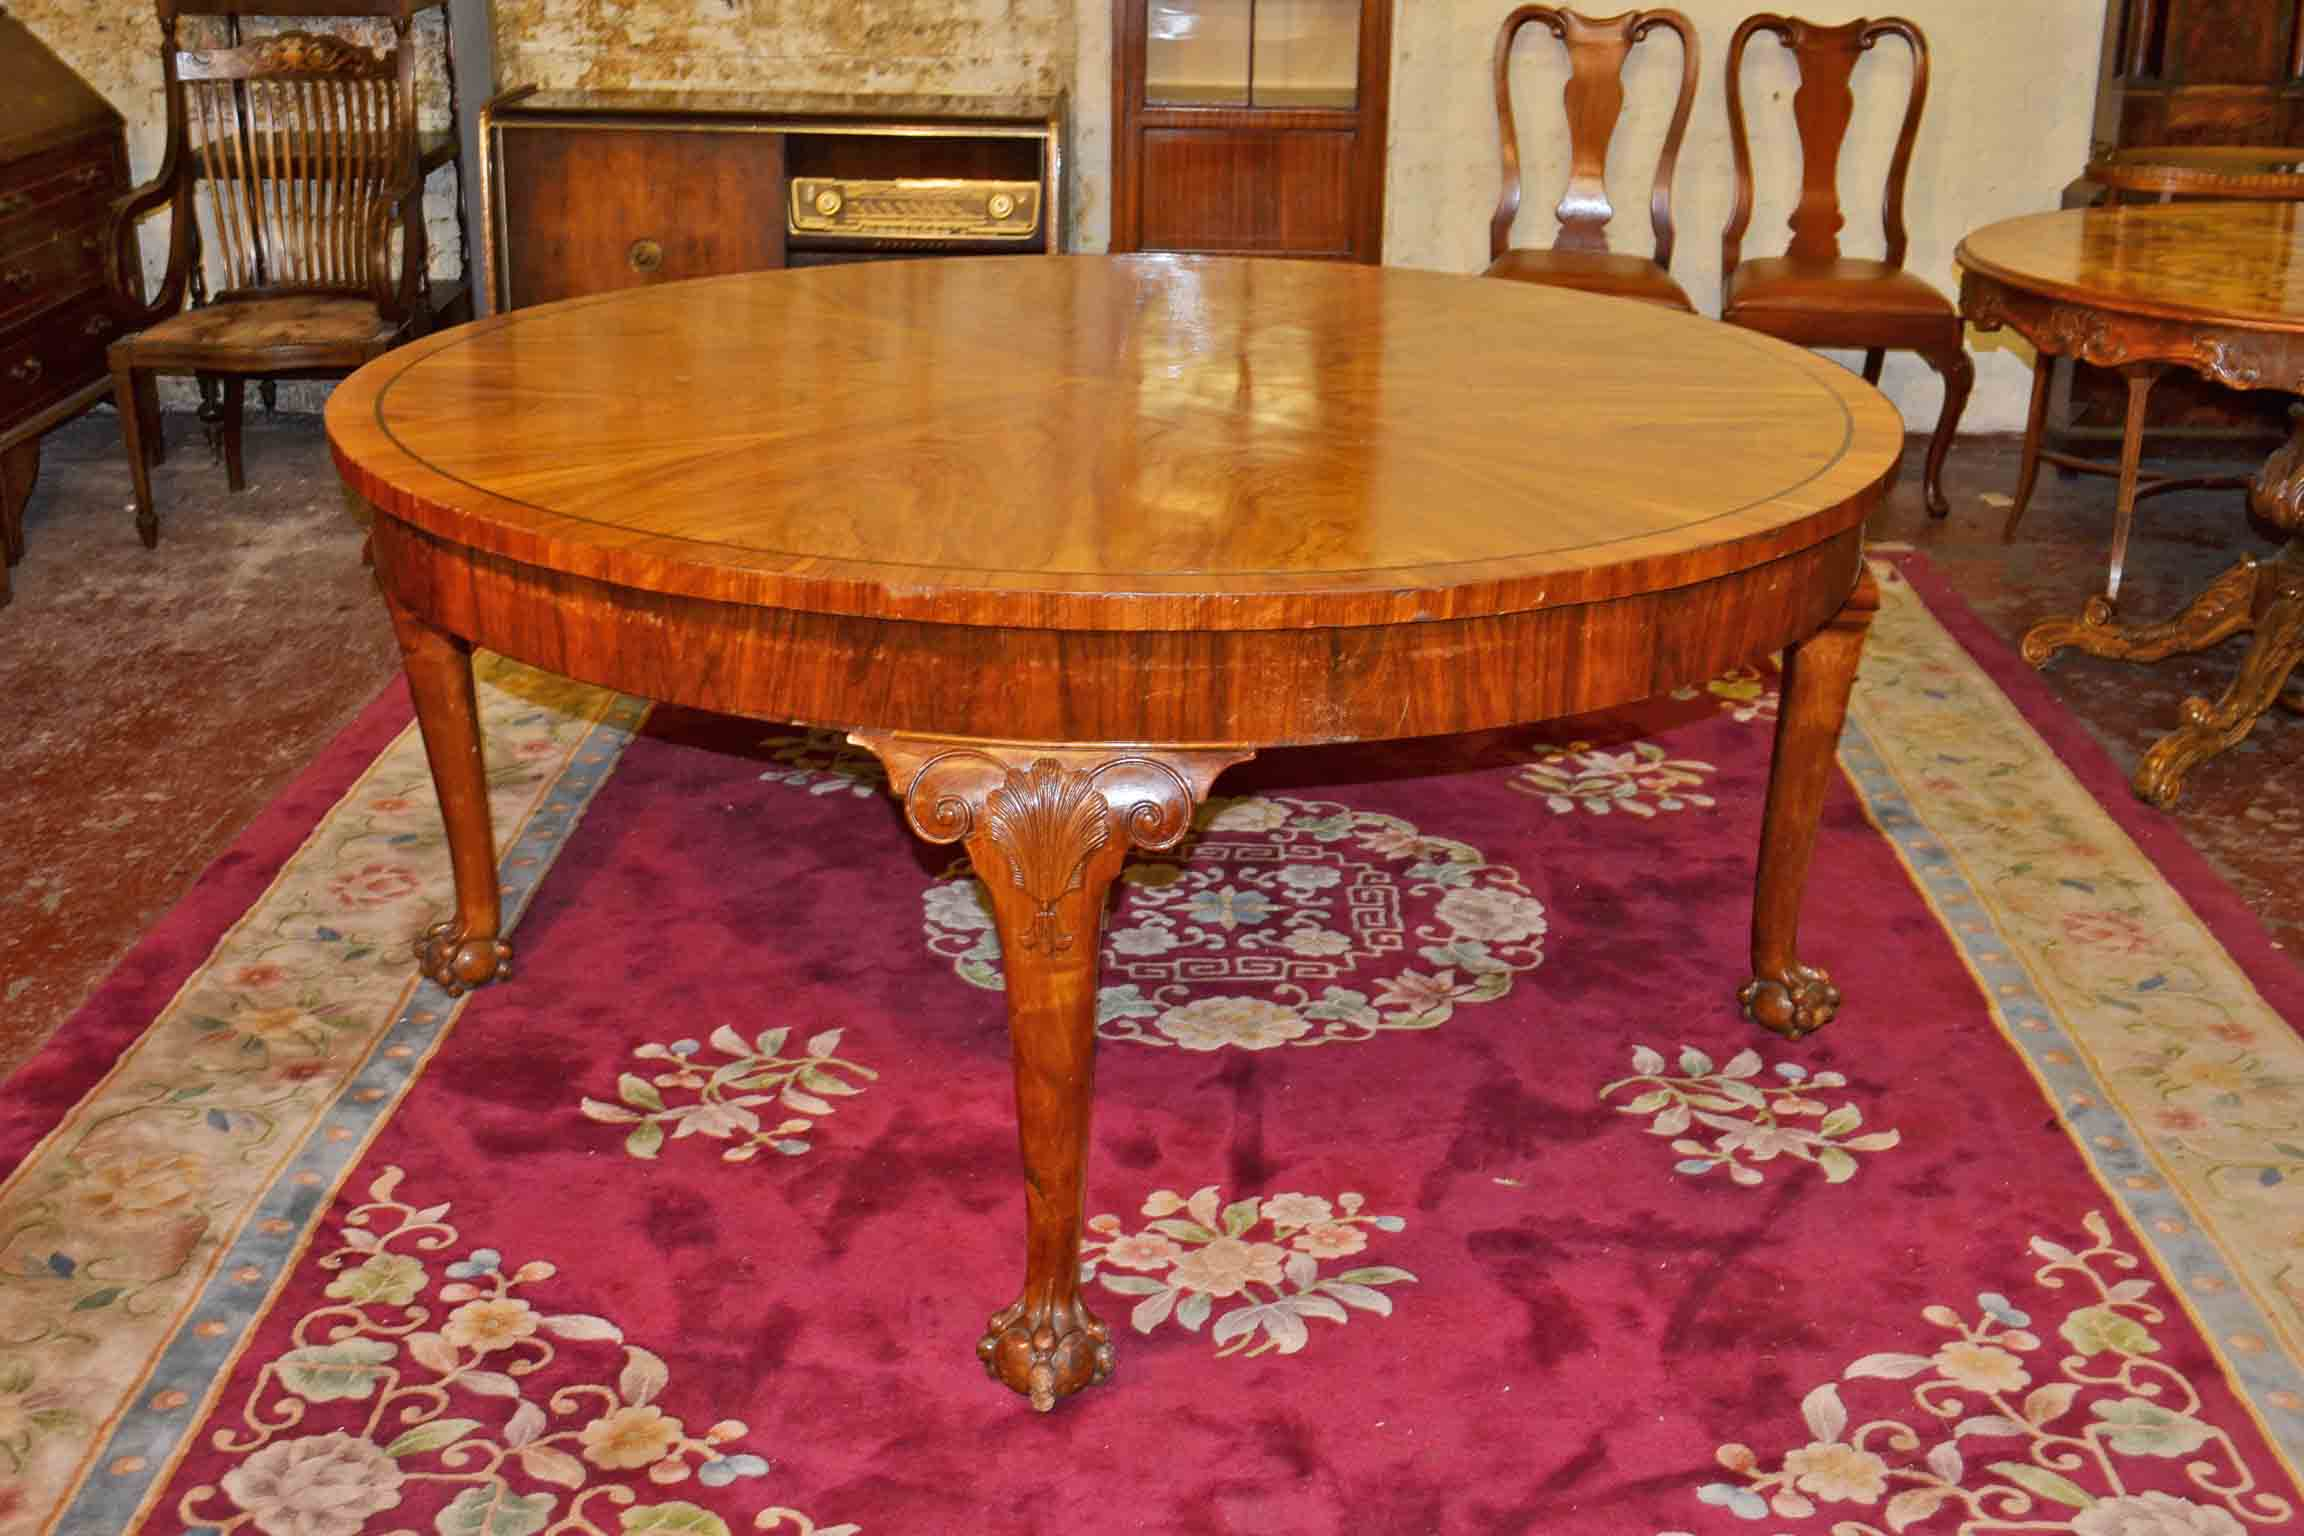 Vintage queen anne dining table 5 ft round ref no 03167 for 6 foot round dining table